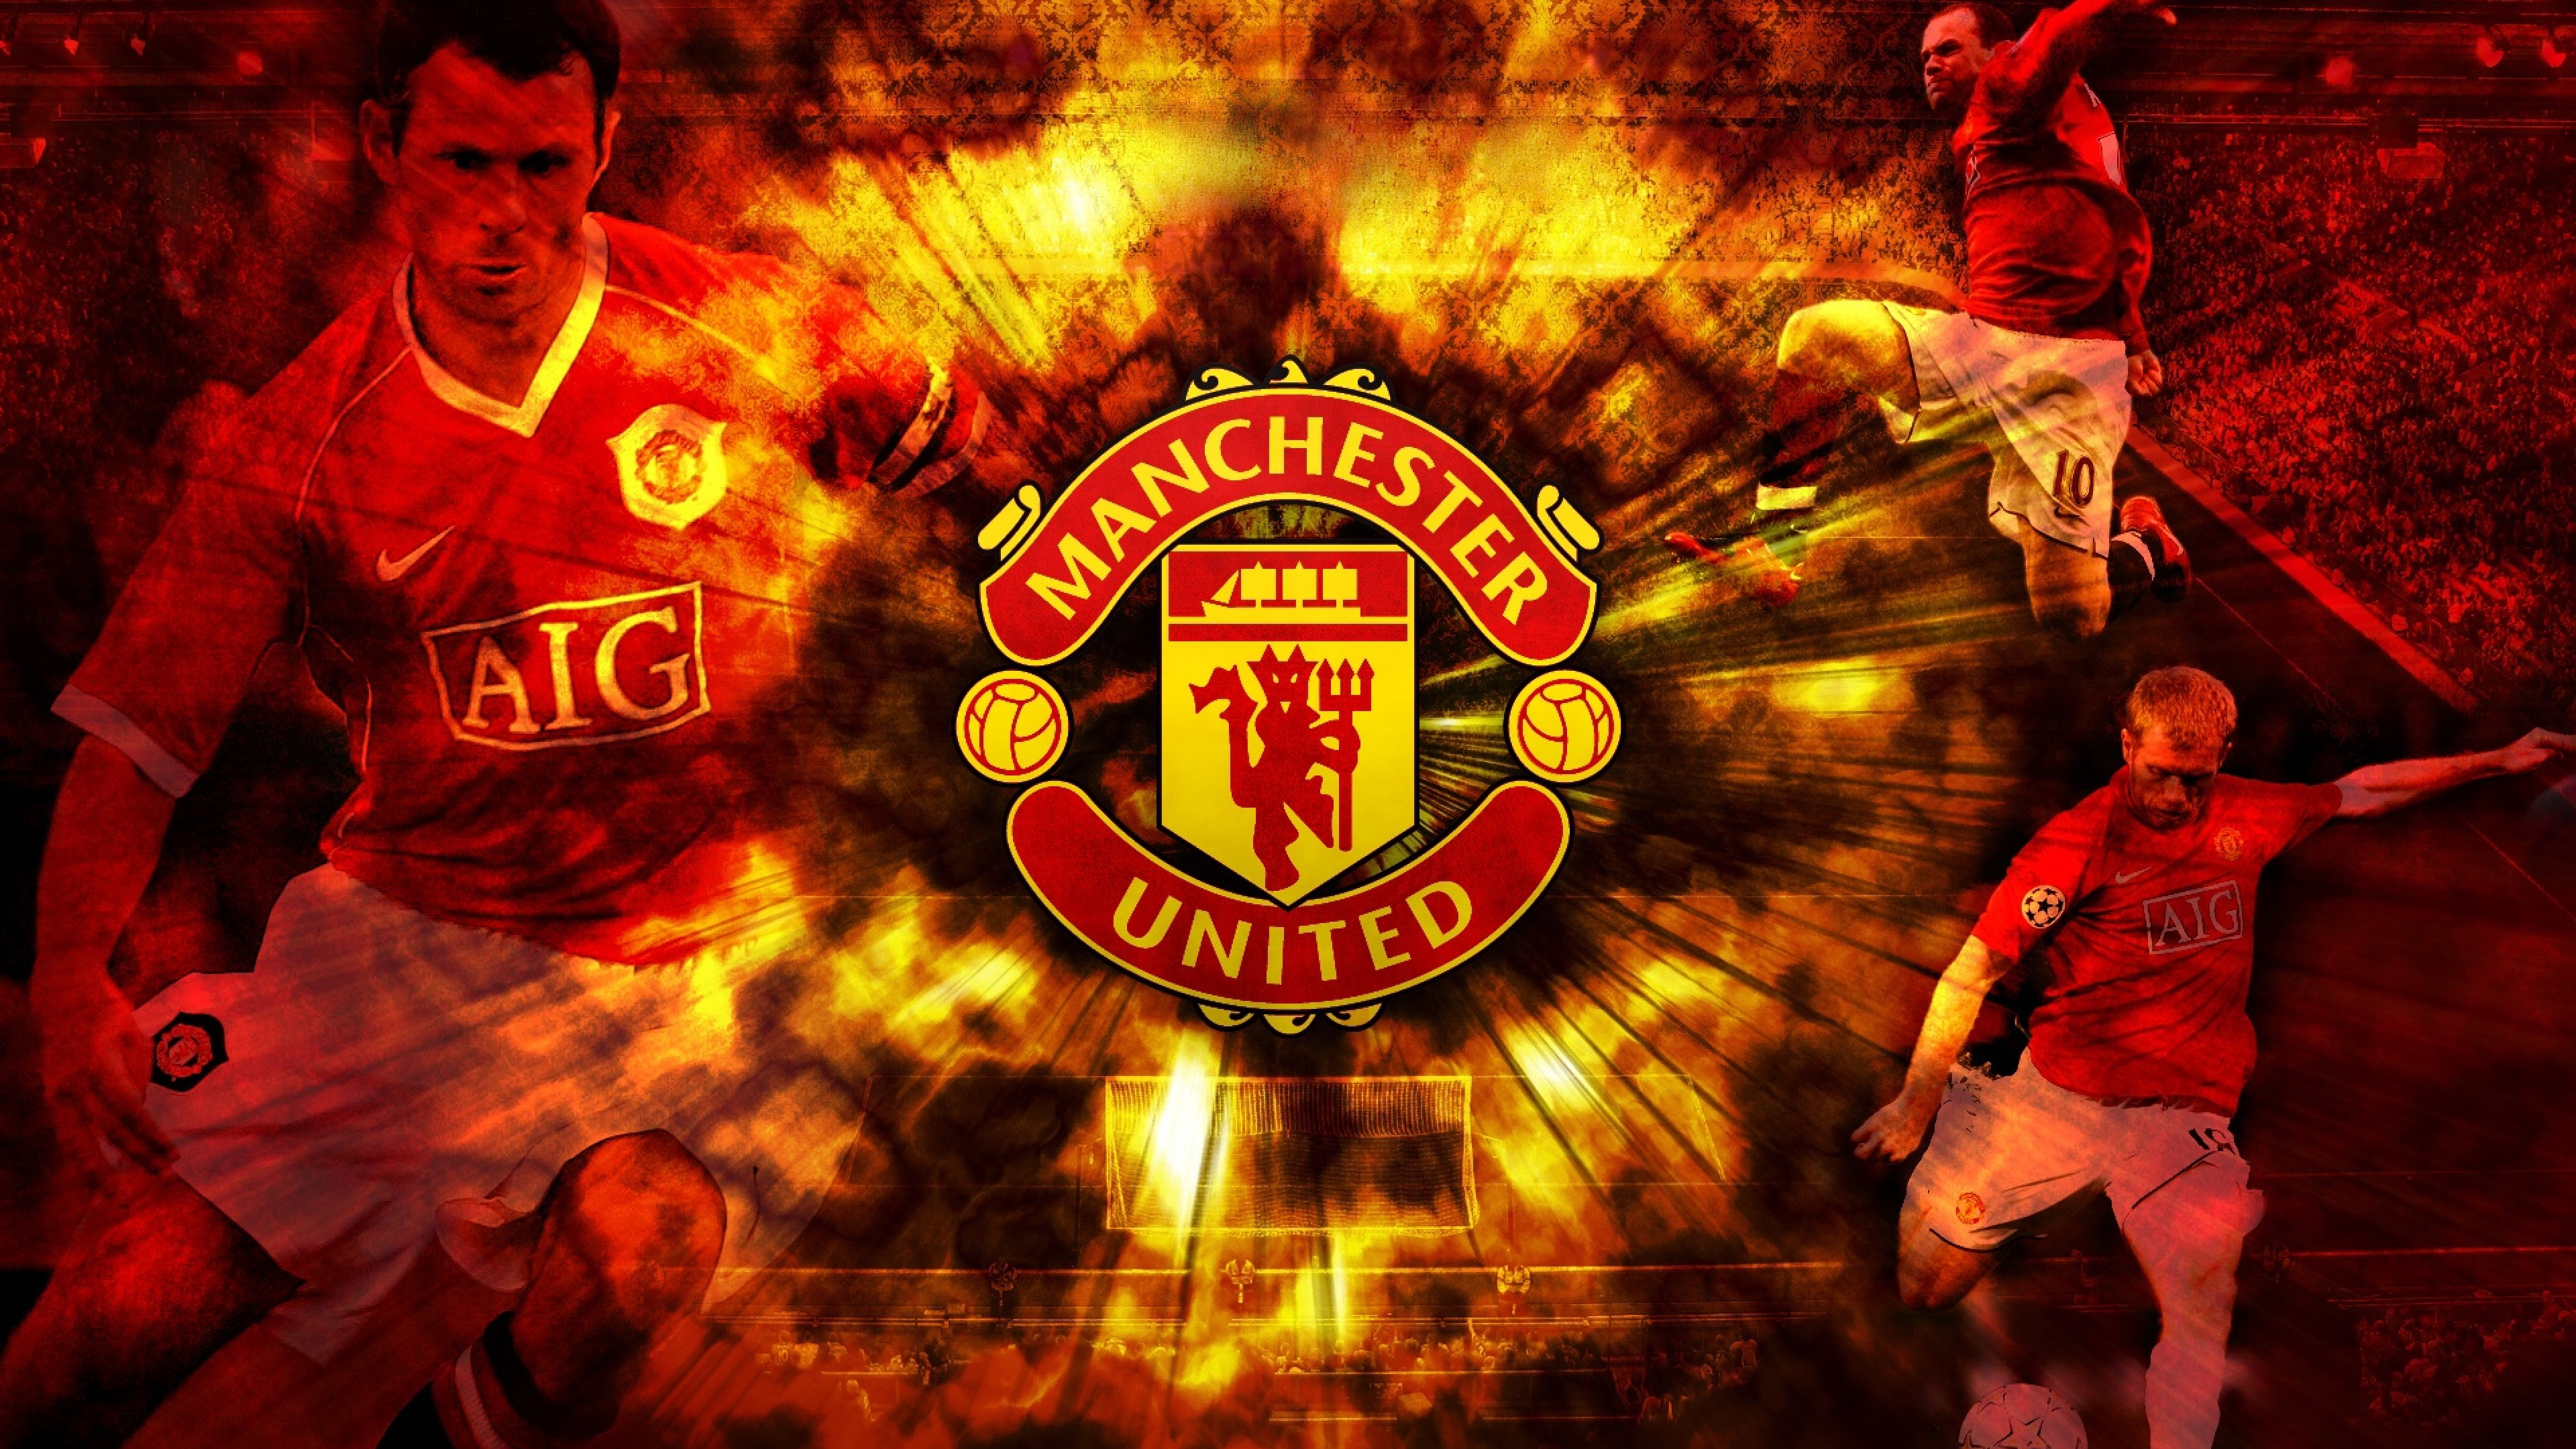 machester united inscription players club 1538786689 - Machester United Inscription Players Club - soccer wallpapers, mc wallpapers, manchester united wallpapers, football wallpapers